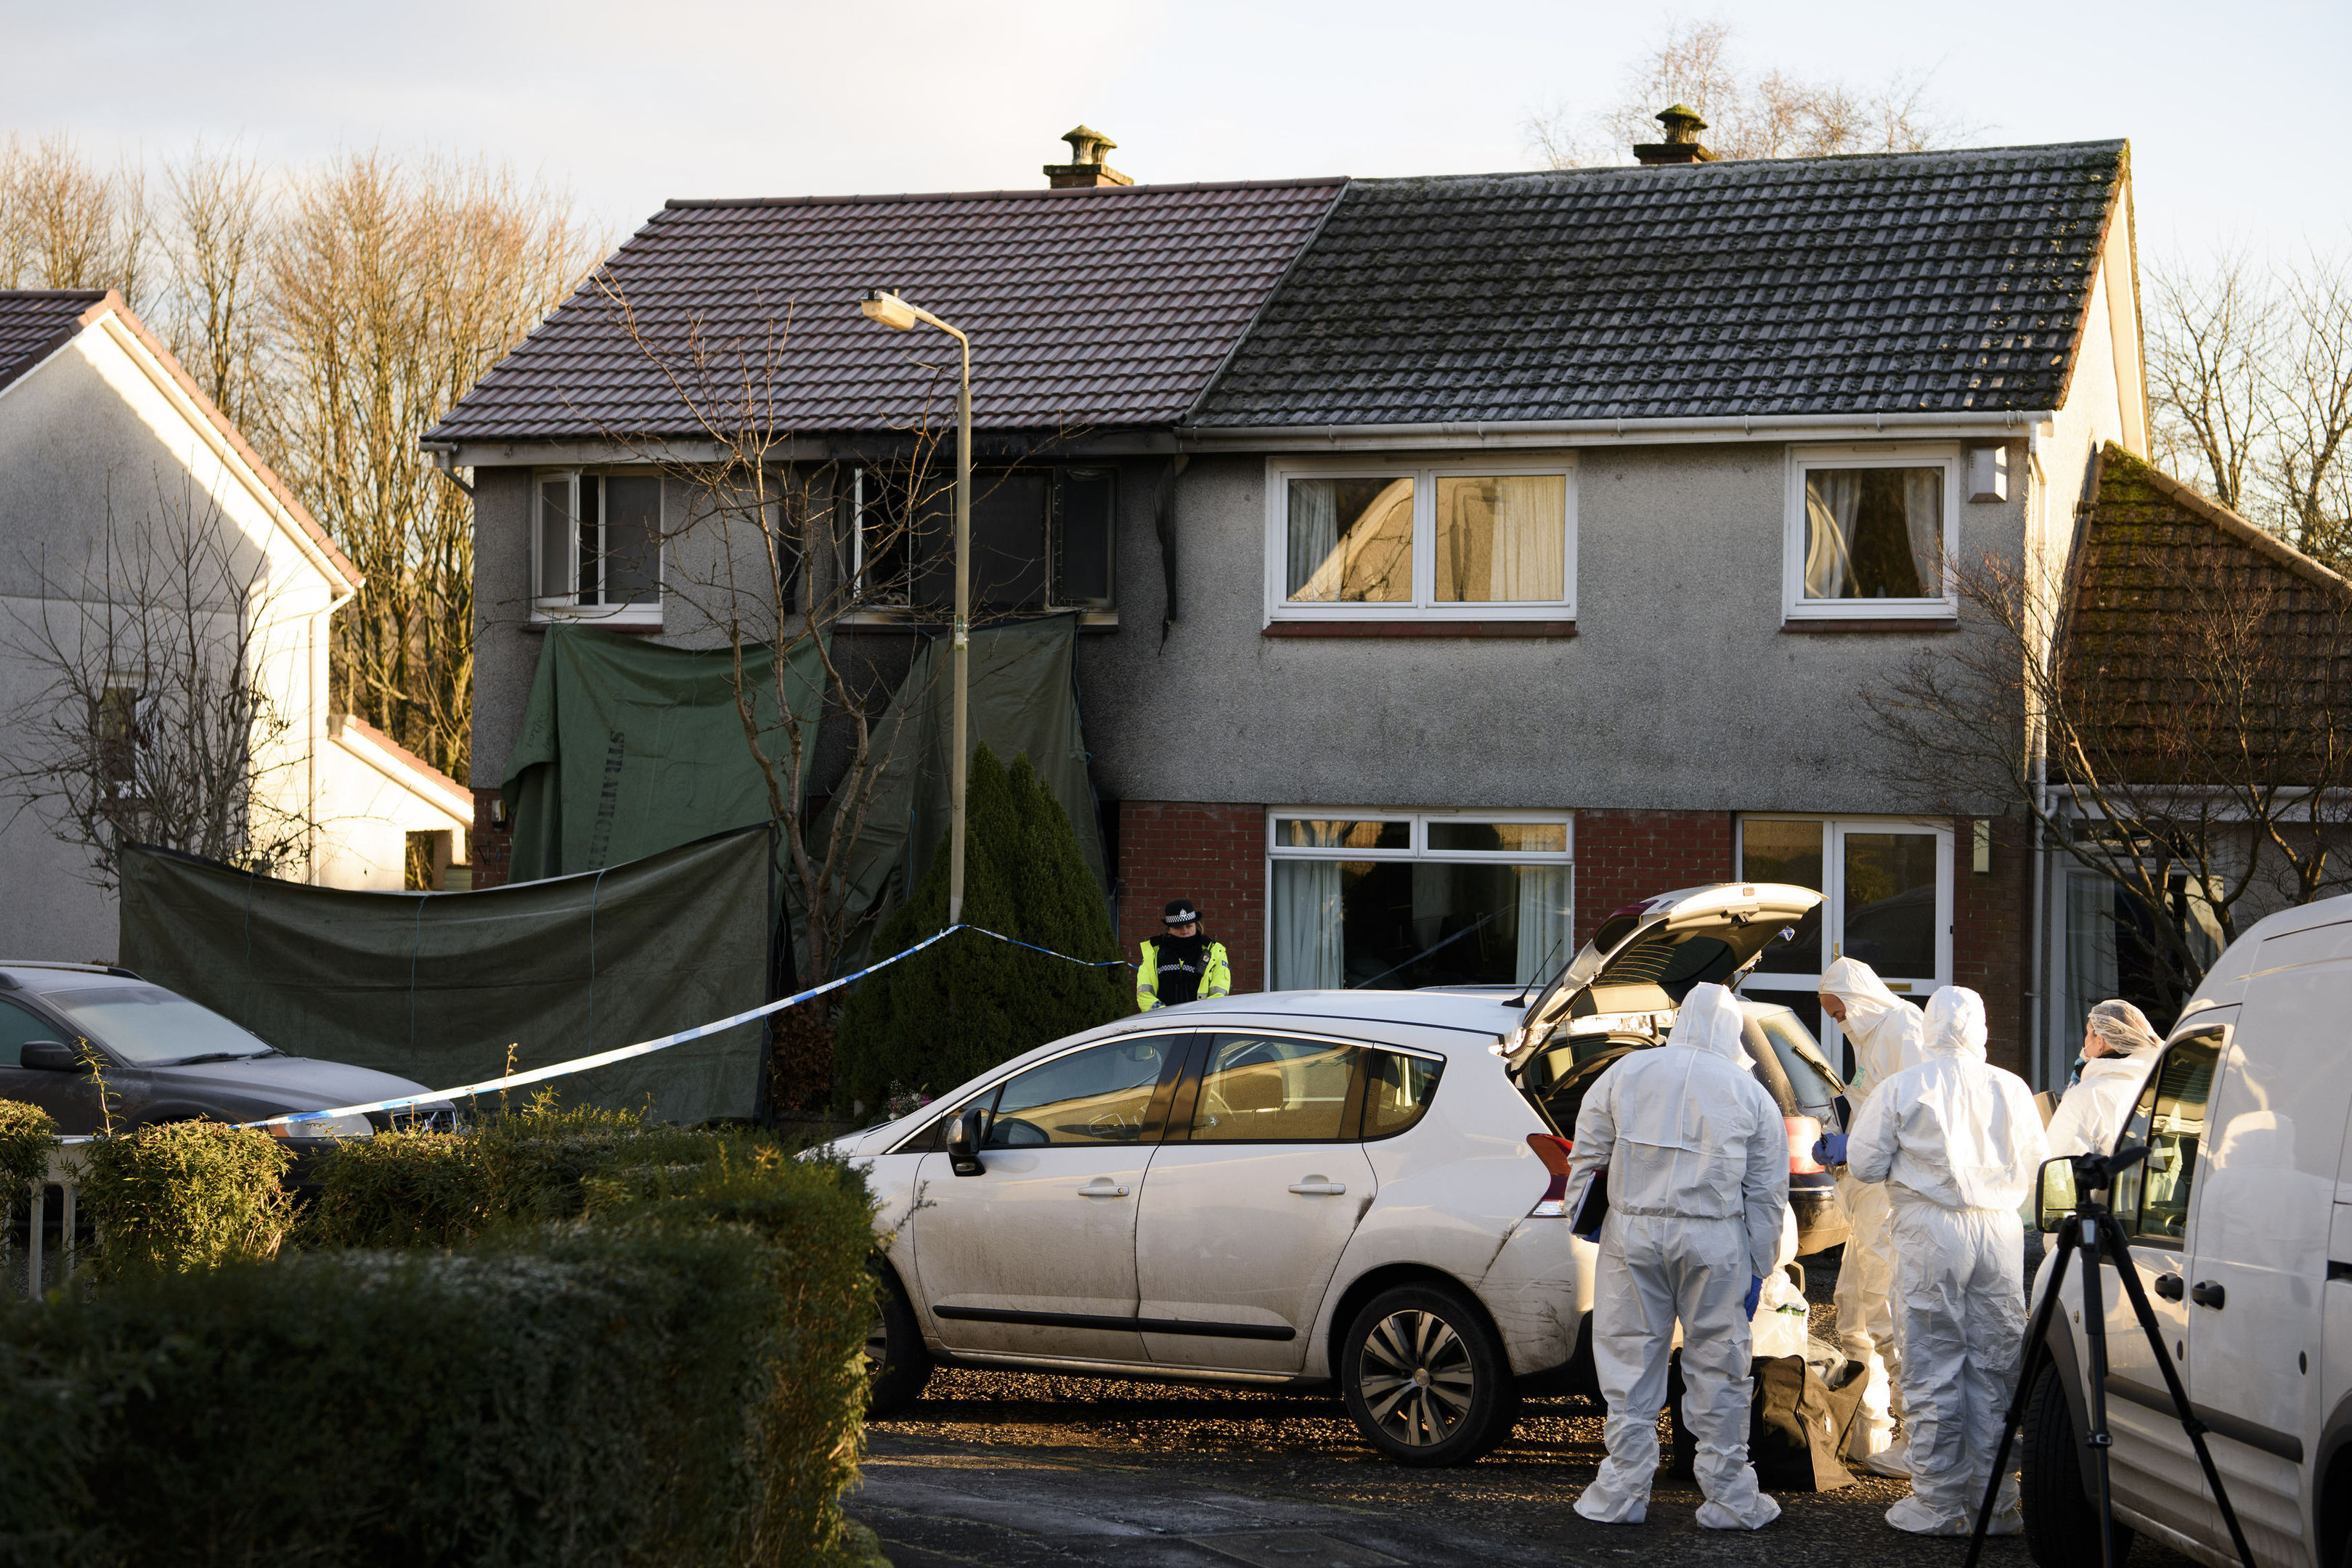 Forensics at the scene of the fatal fire in Milngavie